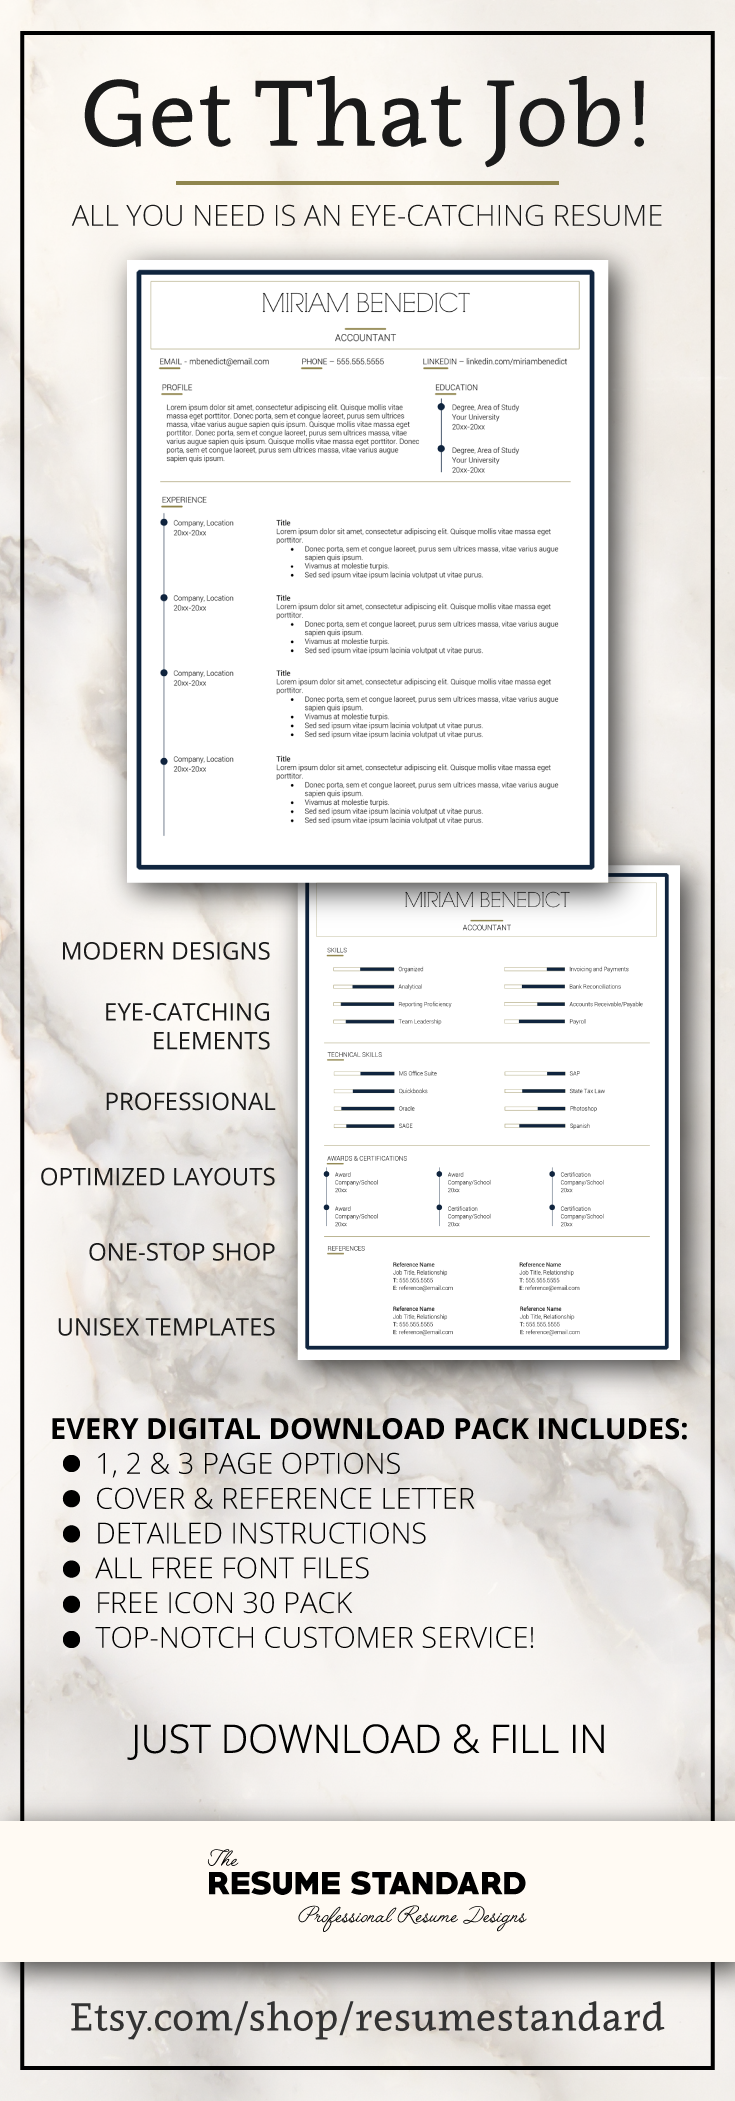 Resume Templates  Cv Templates  Resume Design Packages  Get The